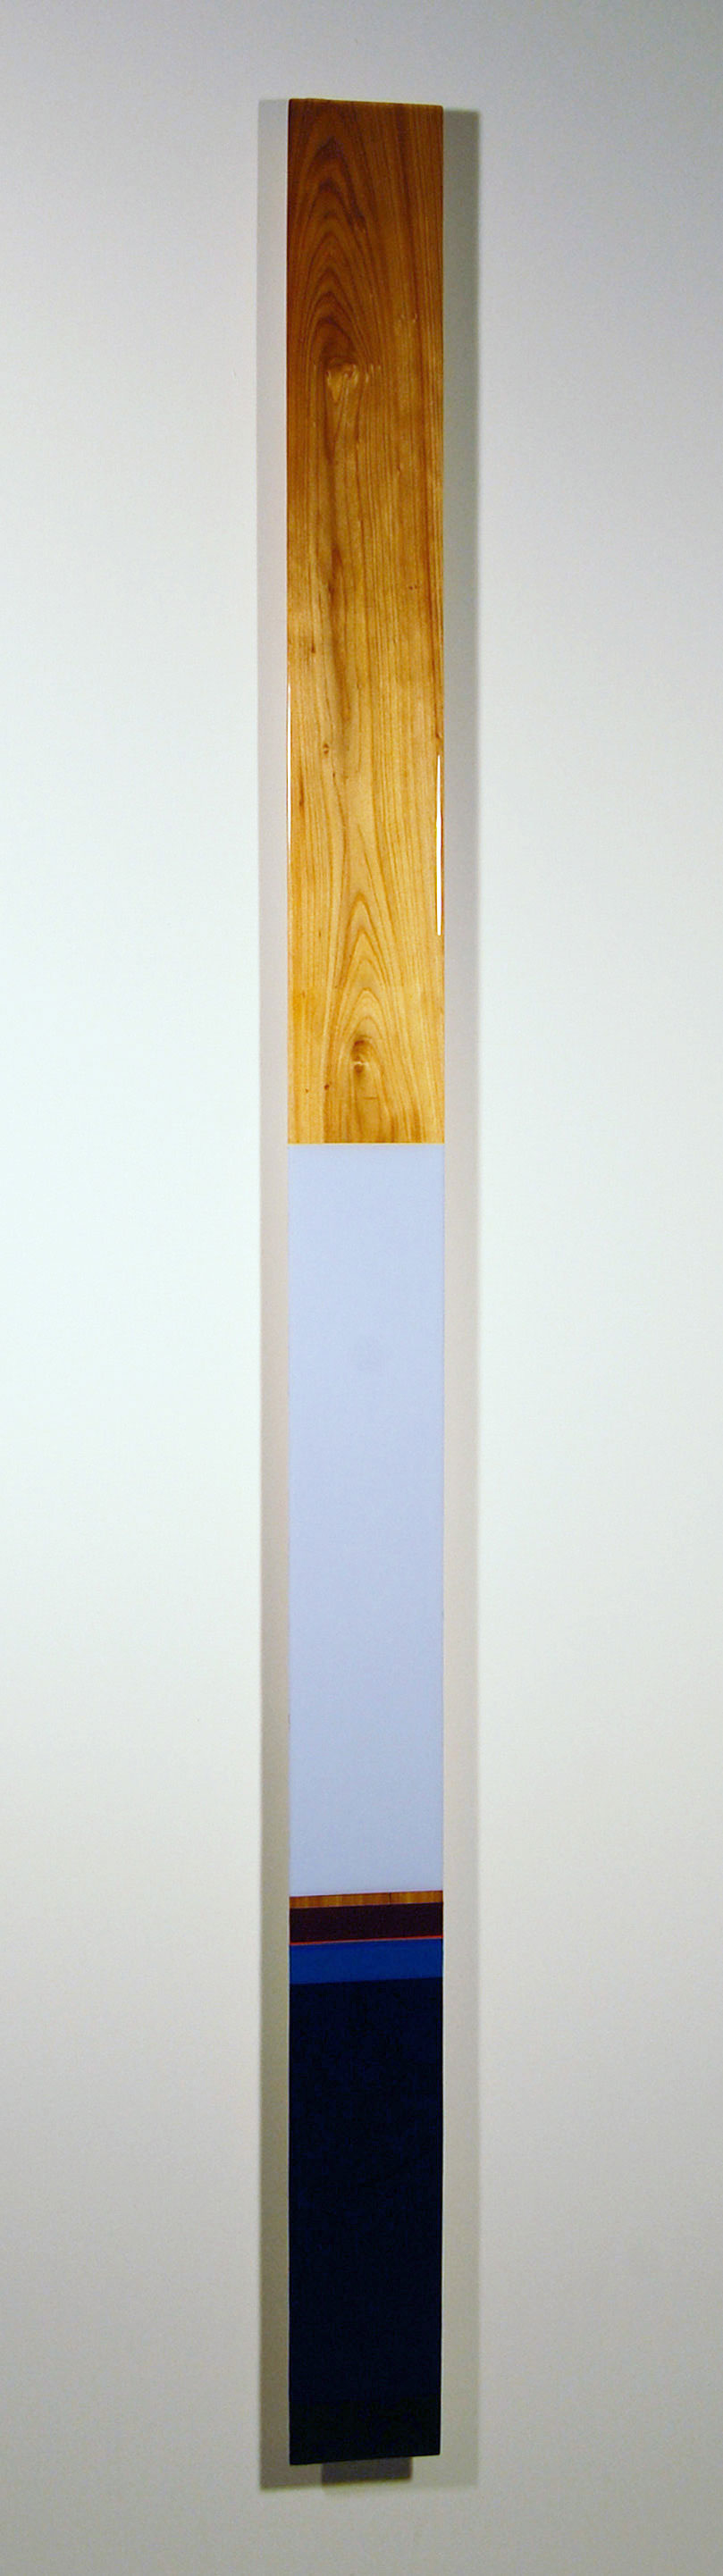 "Leaner L3  - Acrylic, Cypress, select pine, and UV resin - Dimension: 76"" x 5.5"" x 2"" / 193 x 14 x 6 cm"